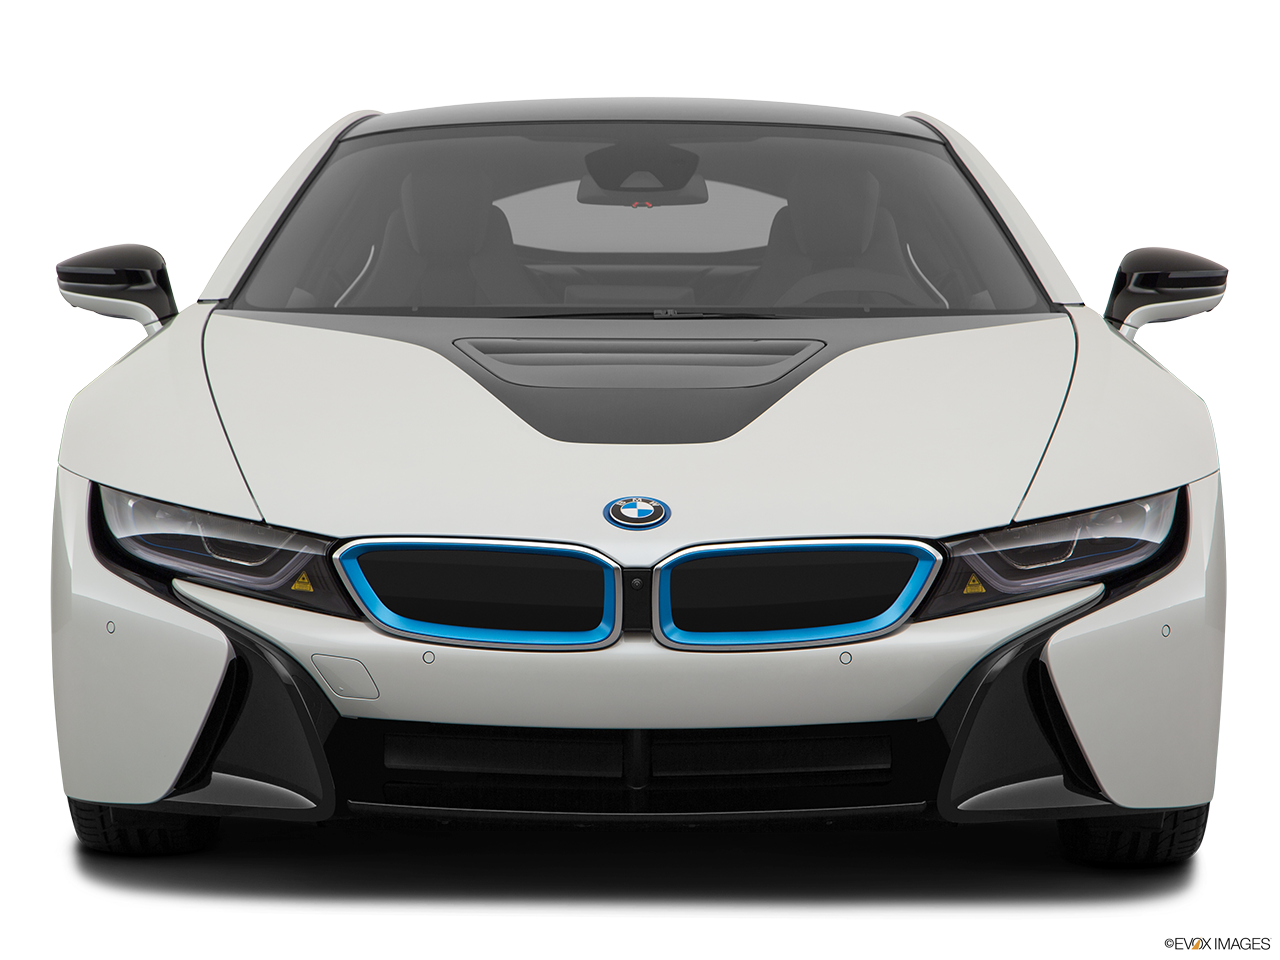 Front view of the BMW i8